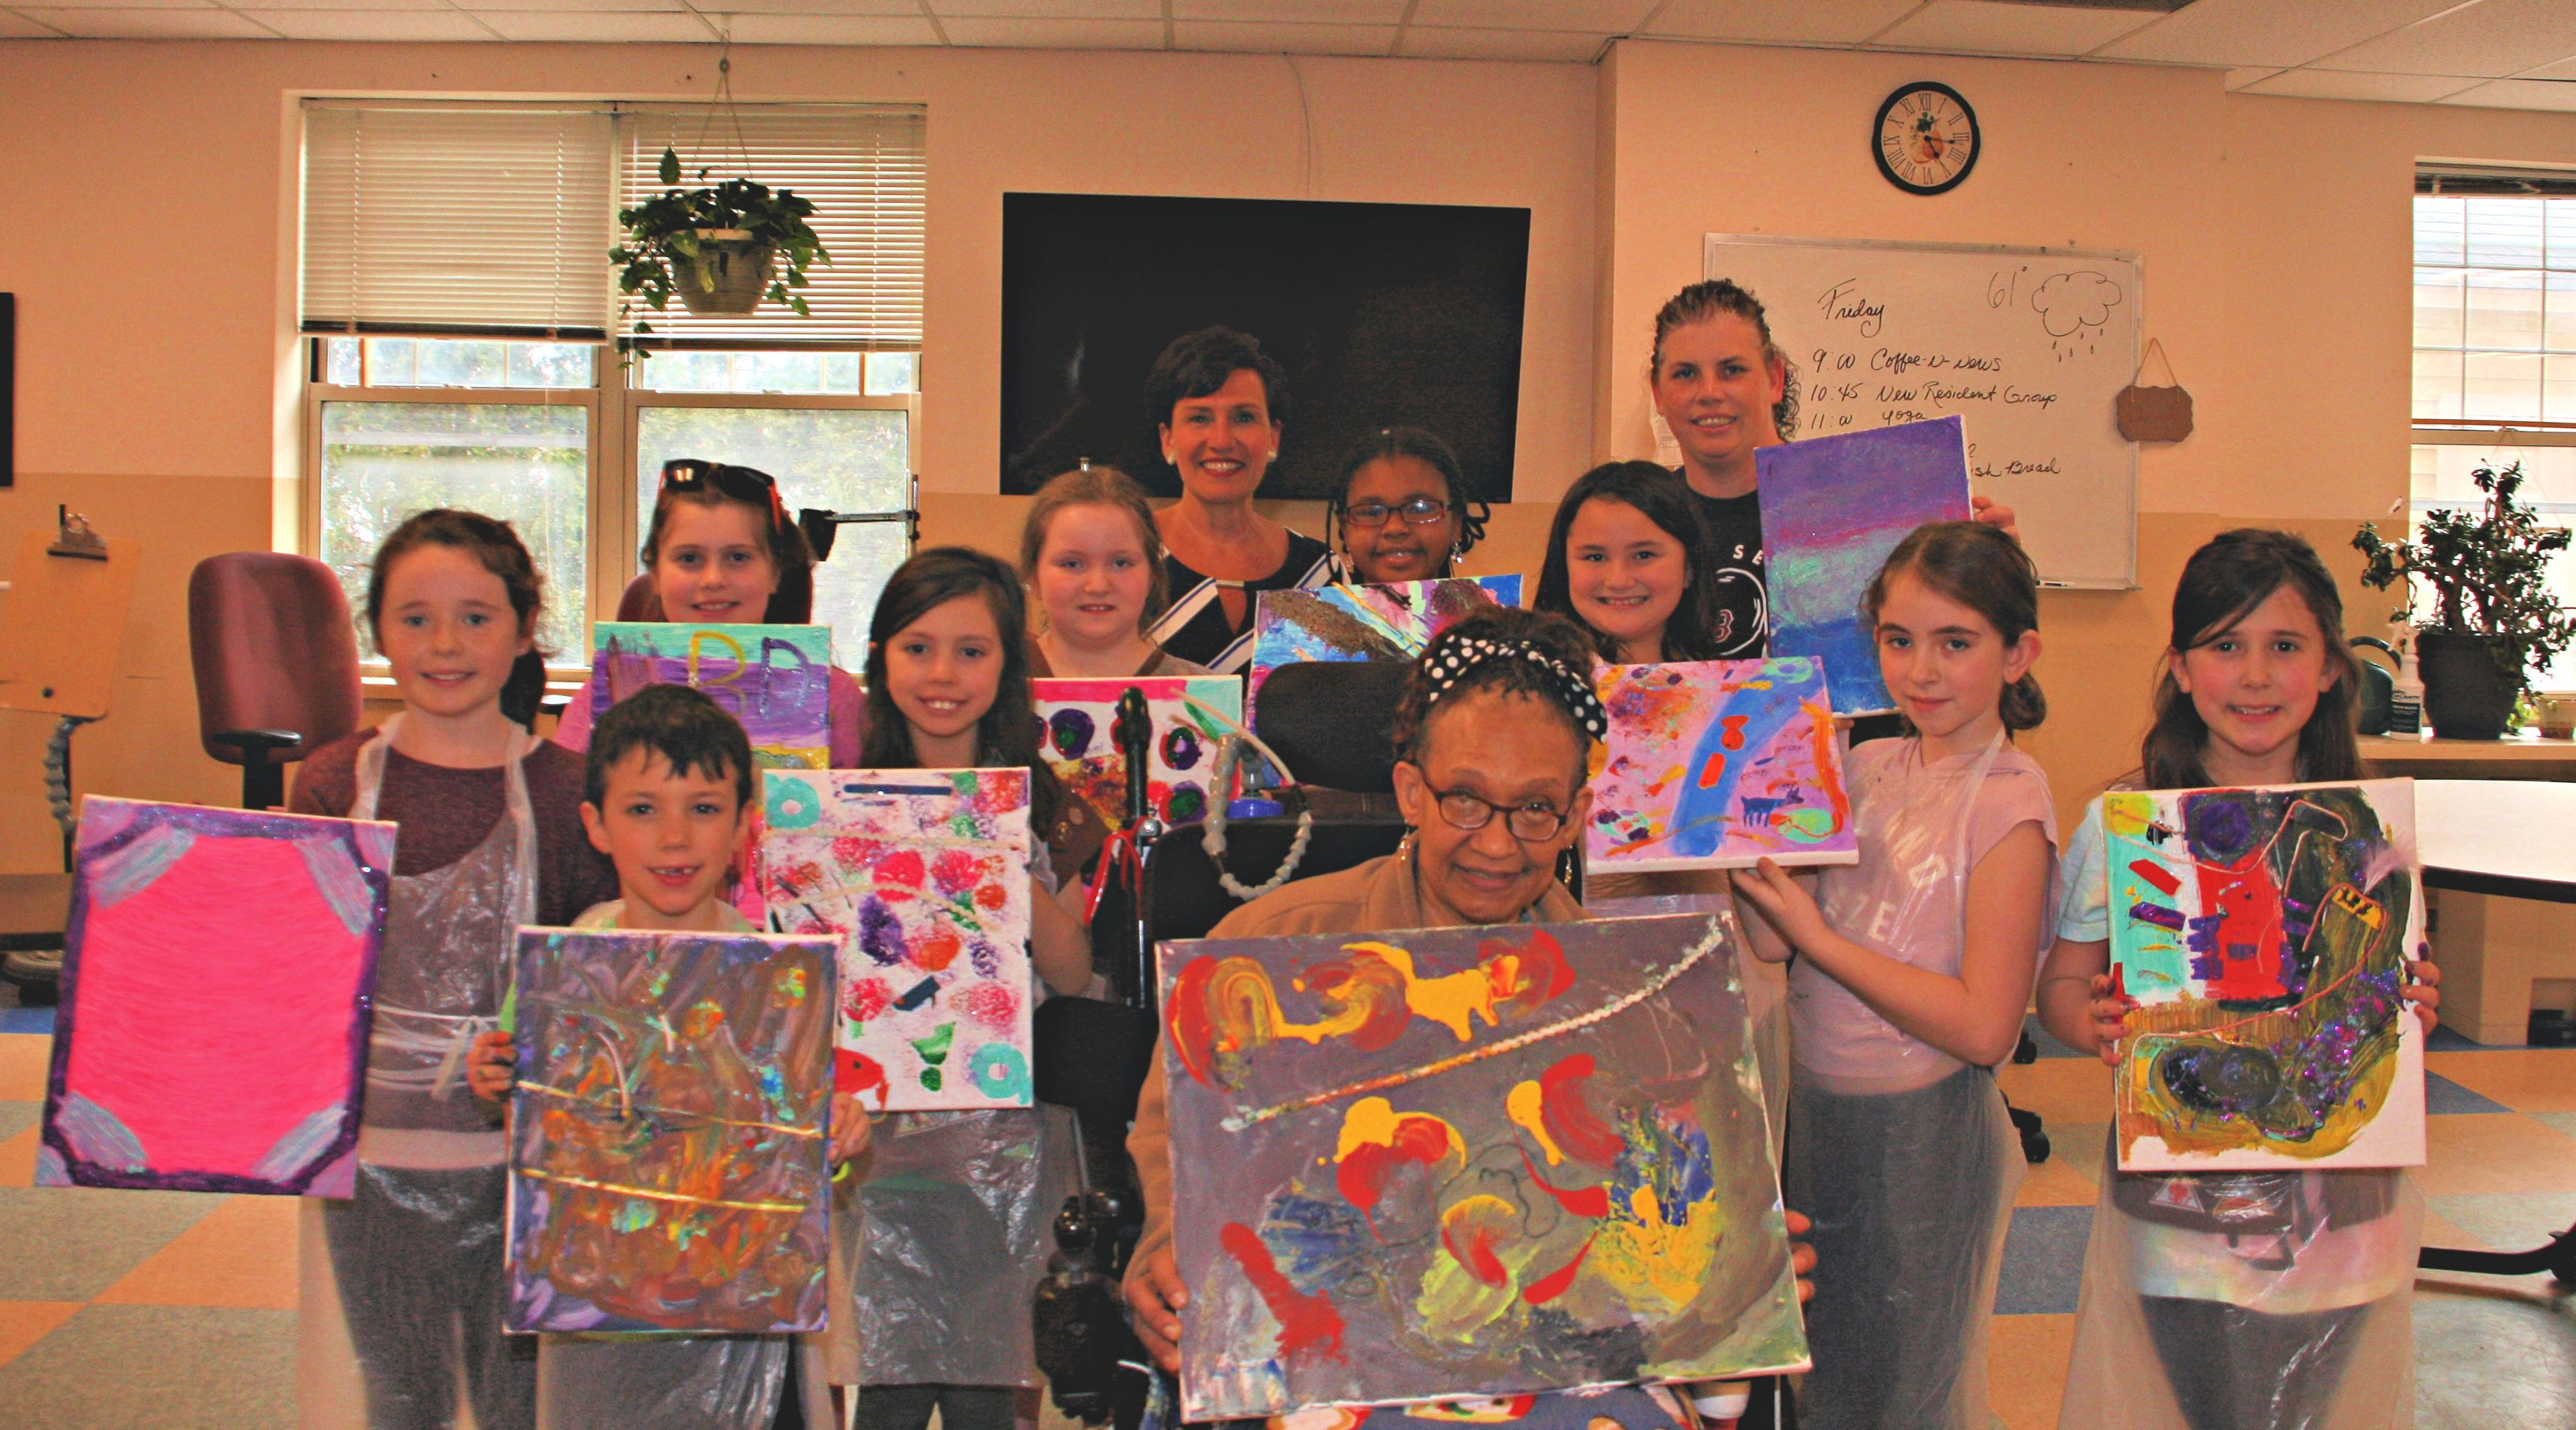 Boston Home Resident and former Girl Scout, Wanda Jordan-Gray  helps Quincy Girl Scout Troup earn Art Badge